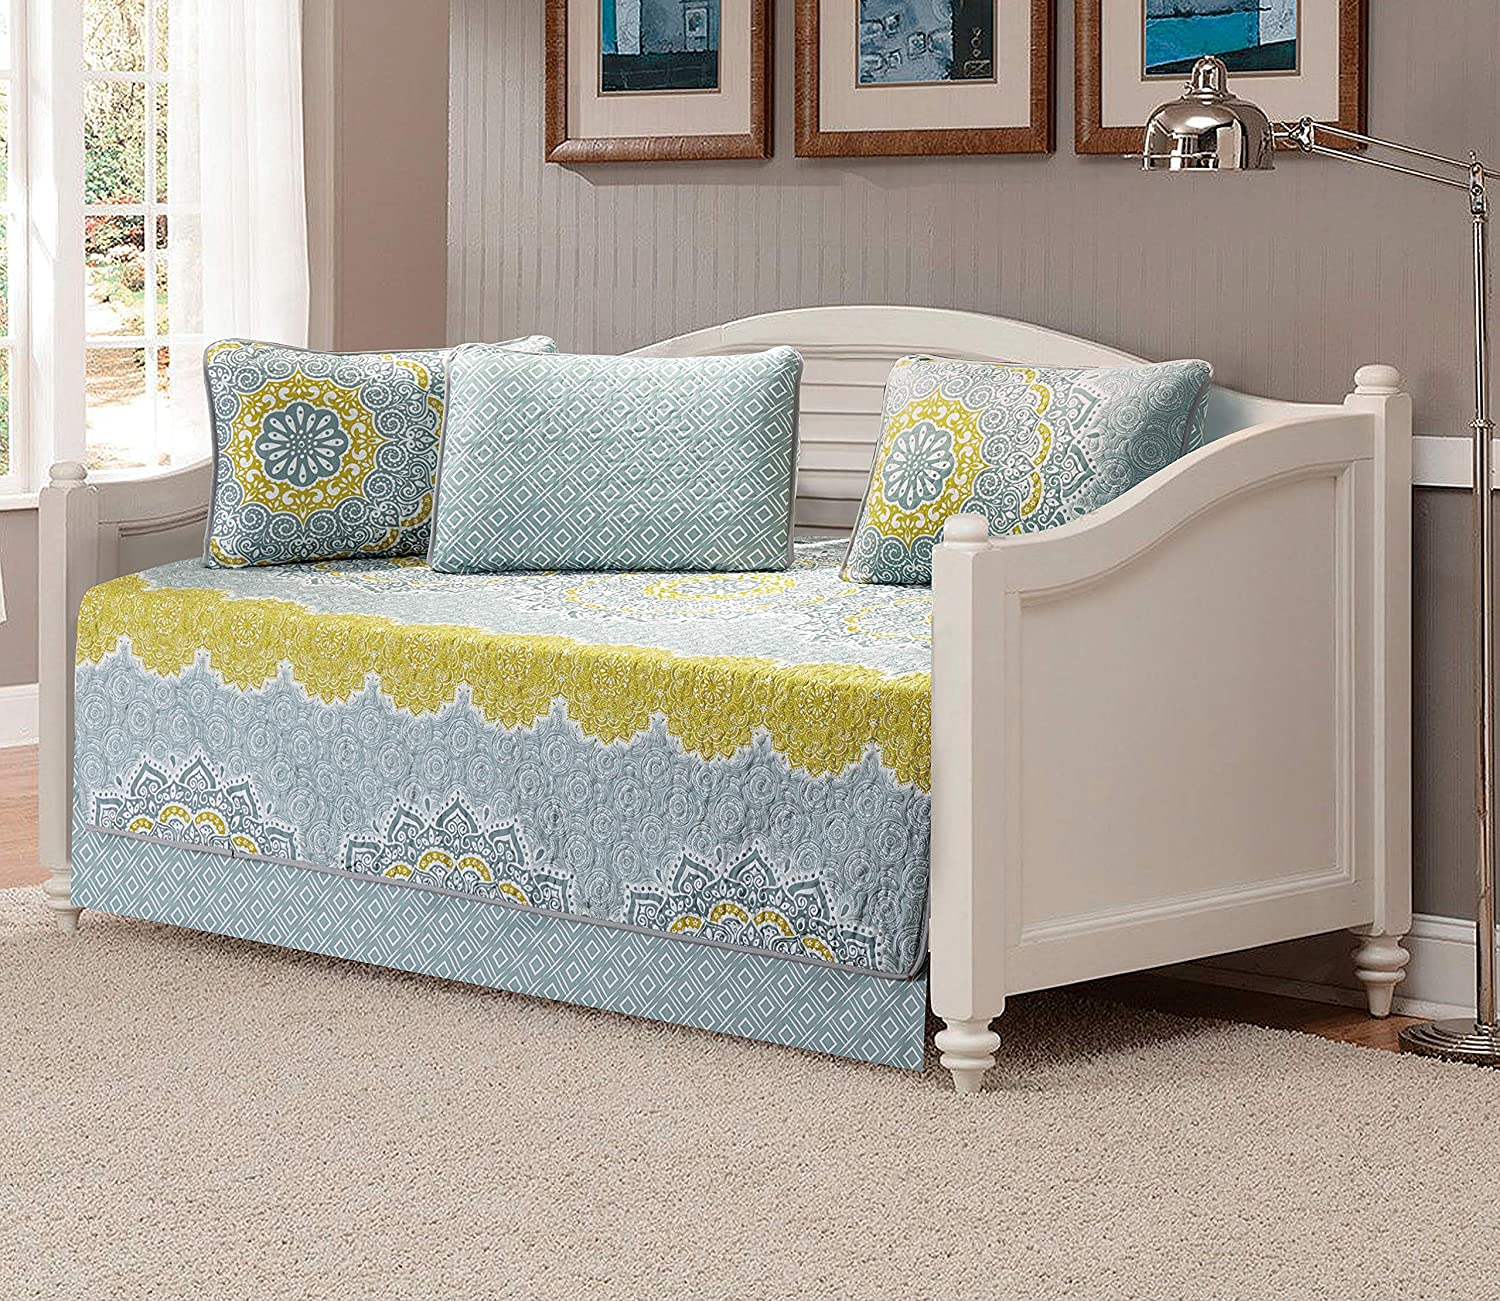 Linen Plus 5pc Daybed Cover Set Quilted Bedspread Floral Yellow Coastal Plain/Gray Green New